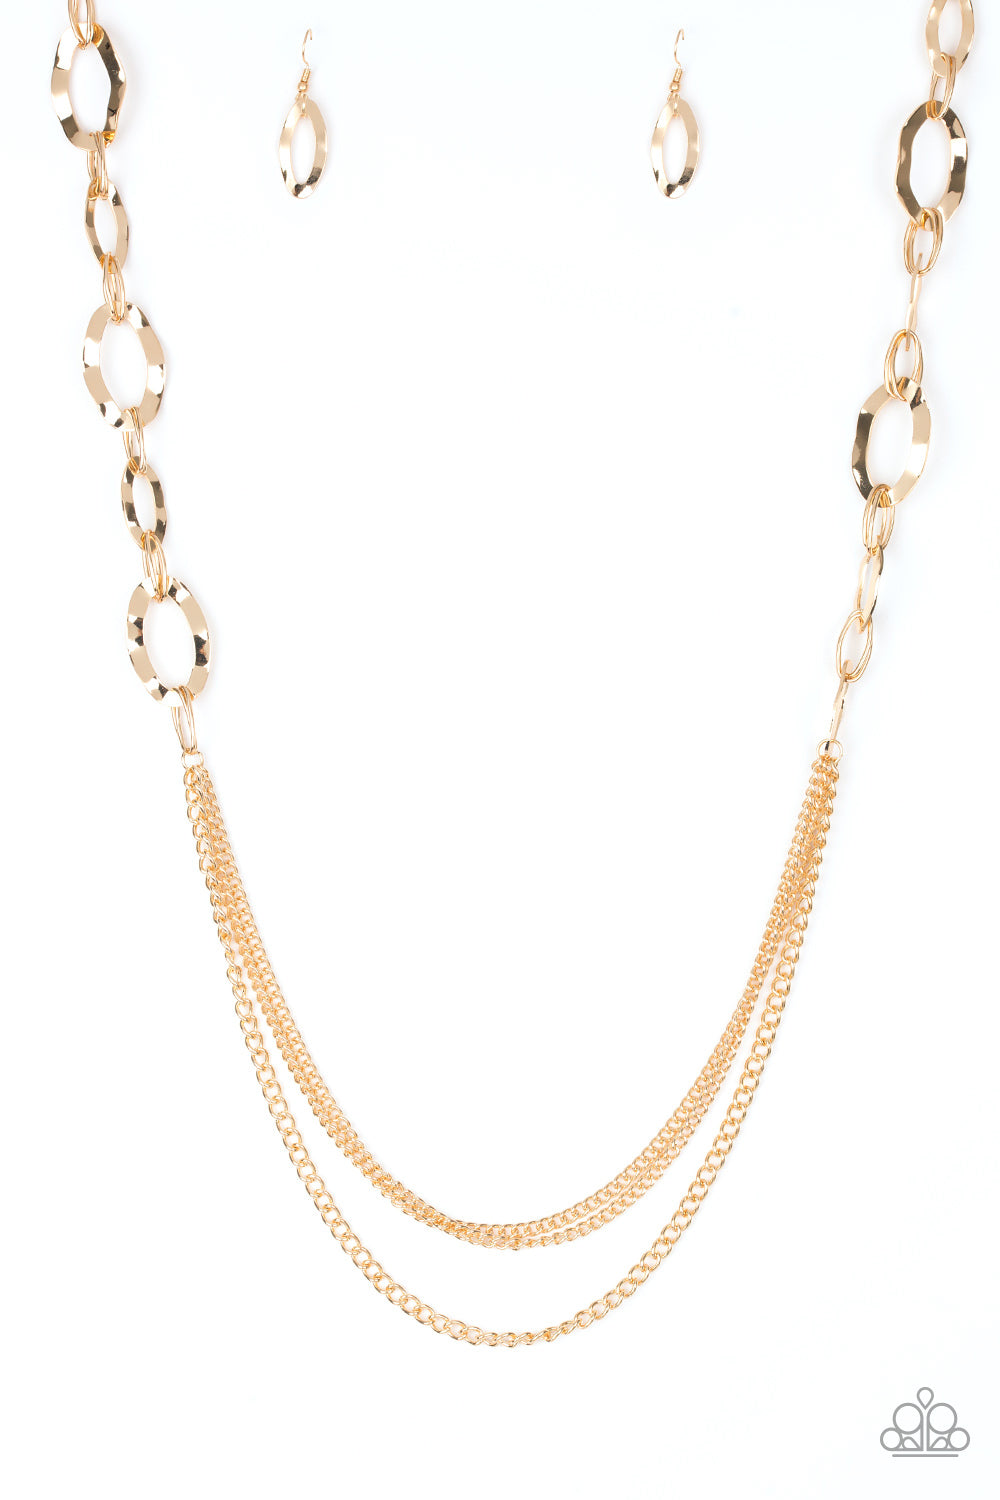 Paparazzi Accessories - Street Beat - Gold Necklace Set - JMJ Jewelry Collection